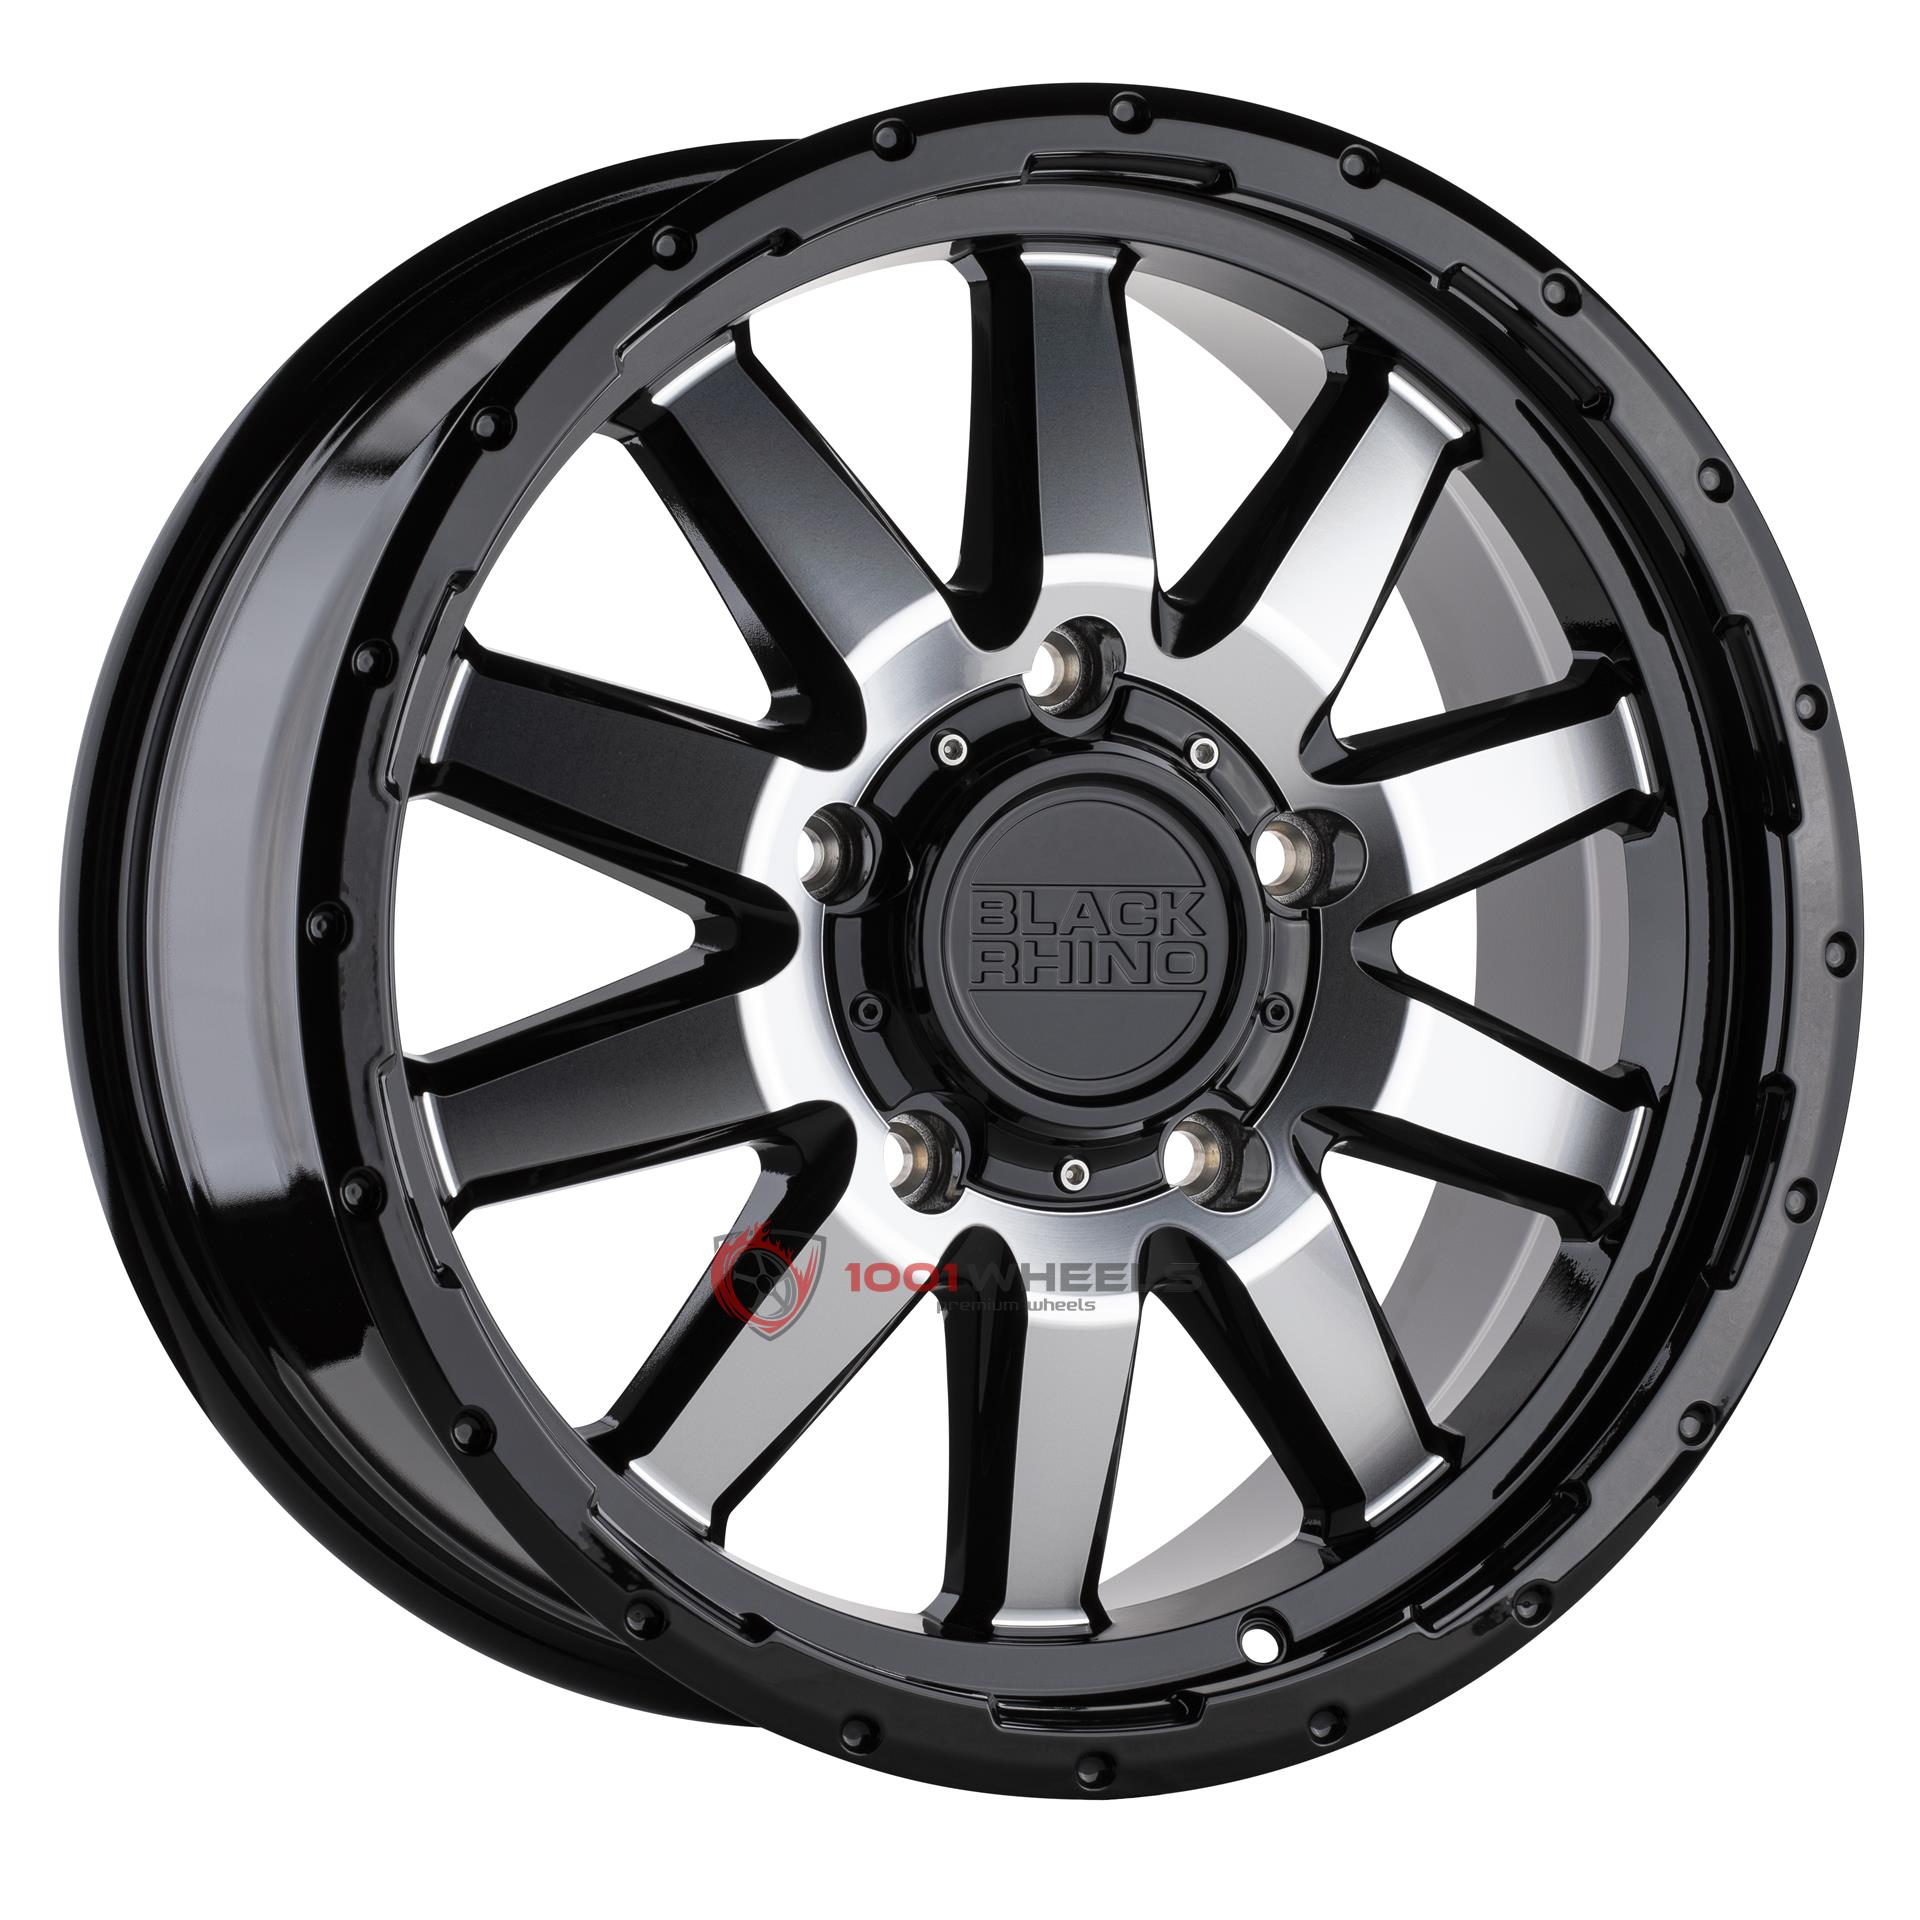 BLACK RHINO EXCURSION gloss-black-wmirror-face